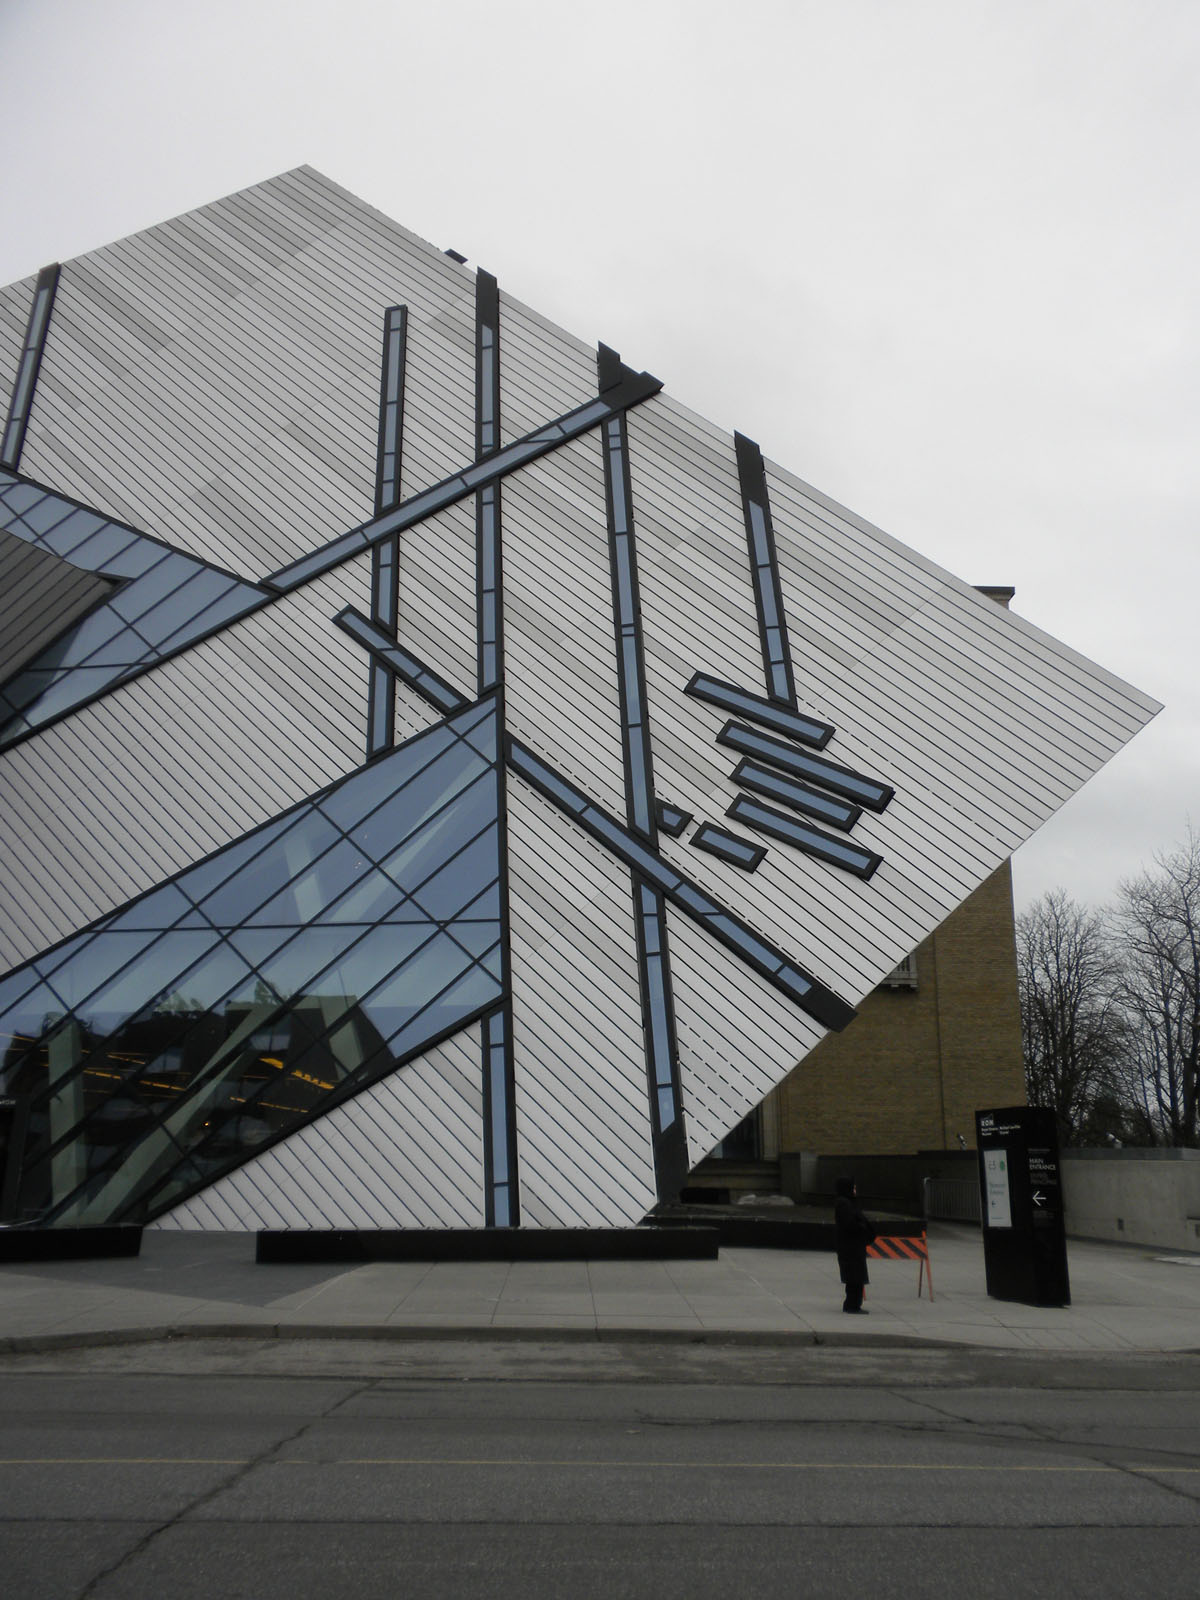 "I started my tour of cultural institutions with a visit to the <a href=""http://www.rom.on.ca/"">Royal Ontario Museum</a>, more commonly known in Toronto as the ROM. The new Michael Lee-Chin Crystal was designed by <a href=""http://www.daniel-libeskind.com/"""